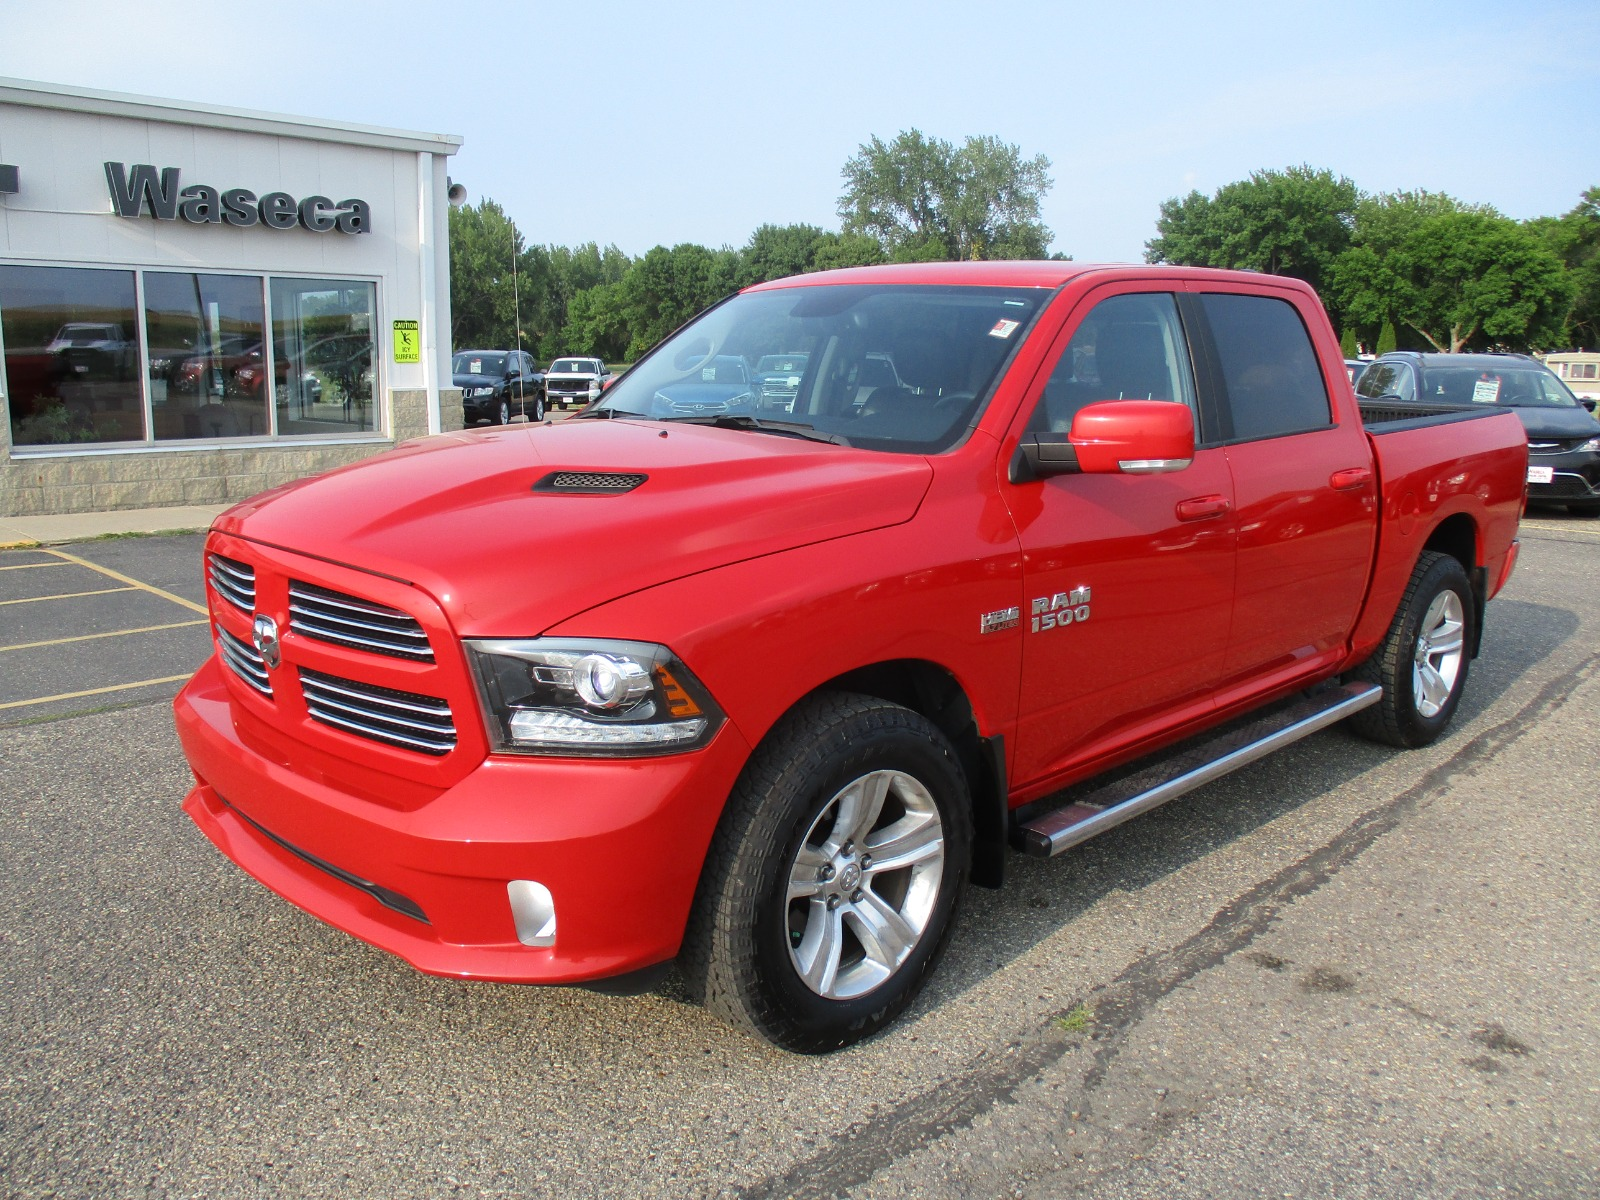 Used 2017 RAM Ram 1500 Pickup Sport with VIN 1C6RR7MT2HS673826 for sale in Waseca, Minnesota